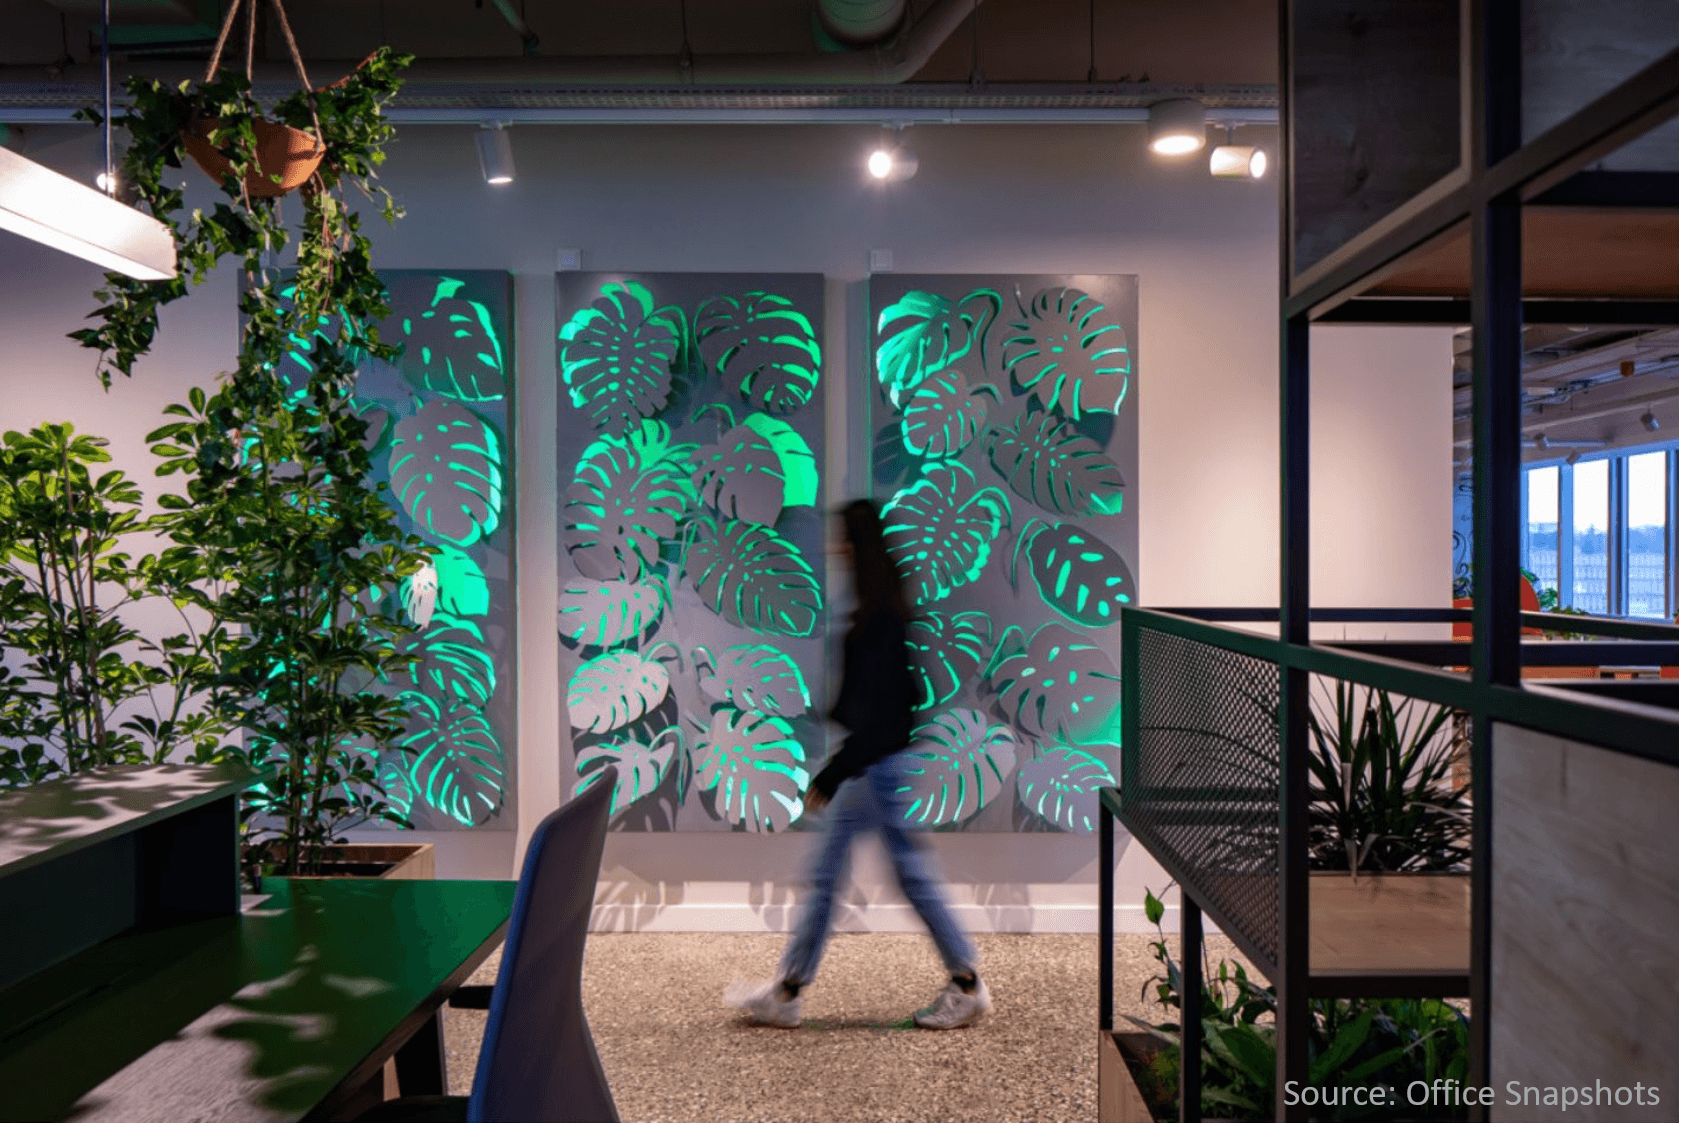 Neo-plant-design-with-real-live-plants-in-office